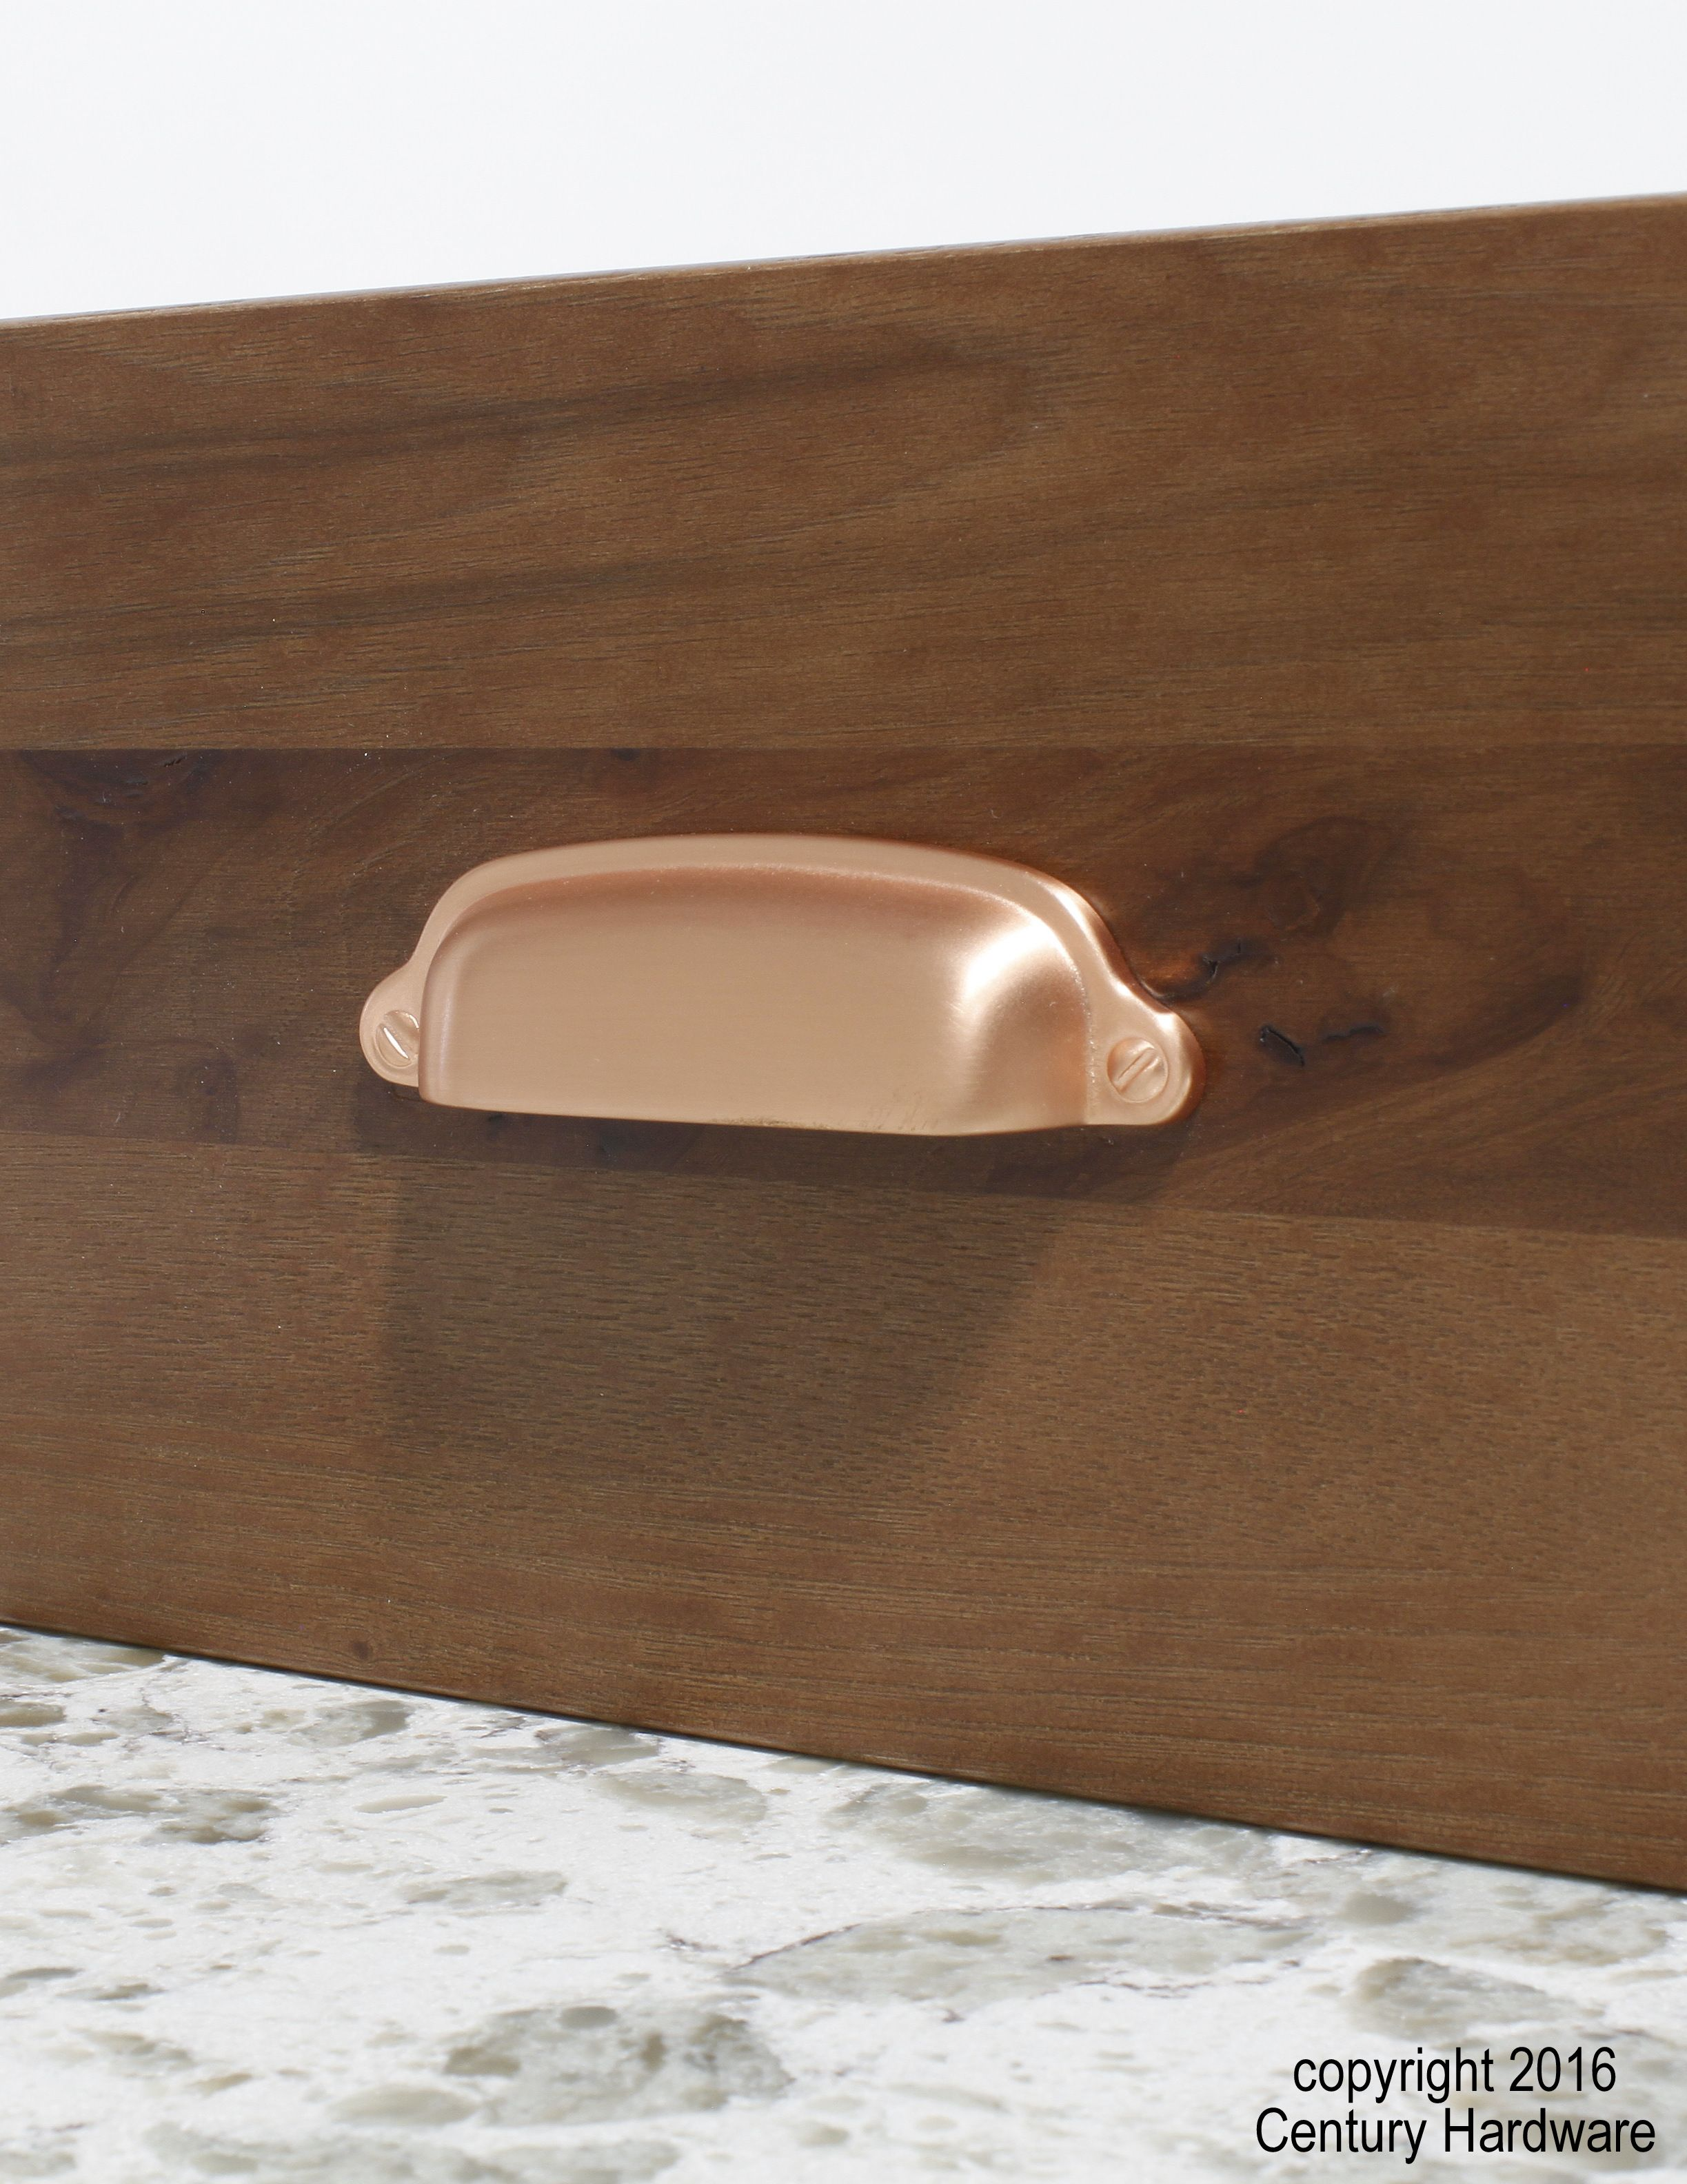 Awesome 3 Inch Cabinet Handles